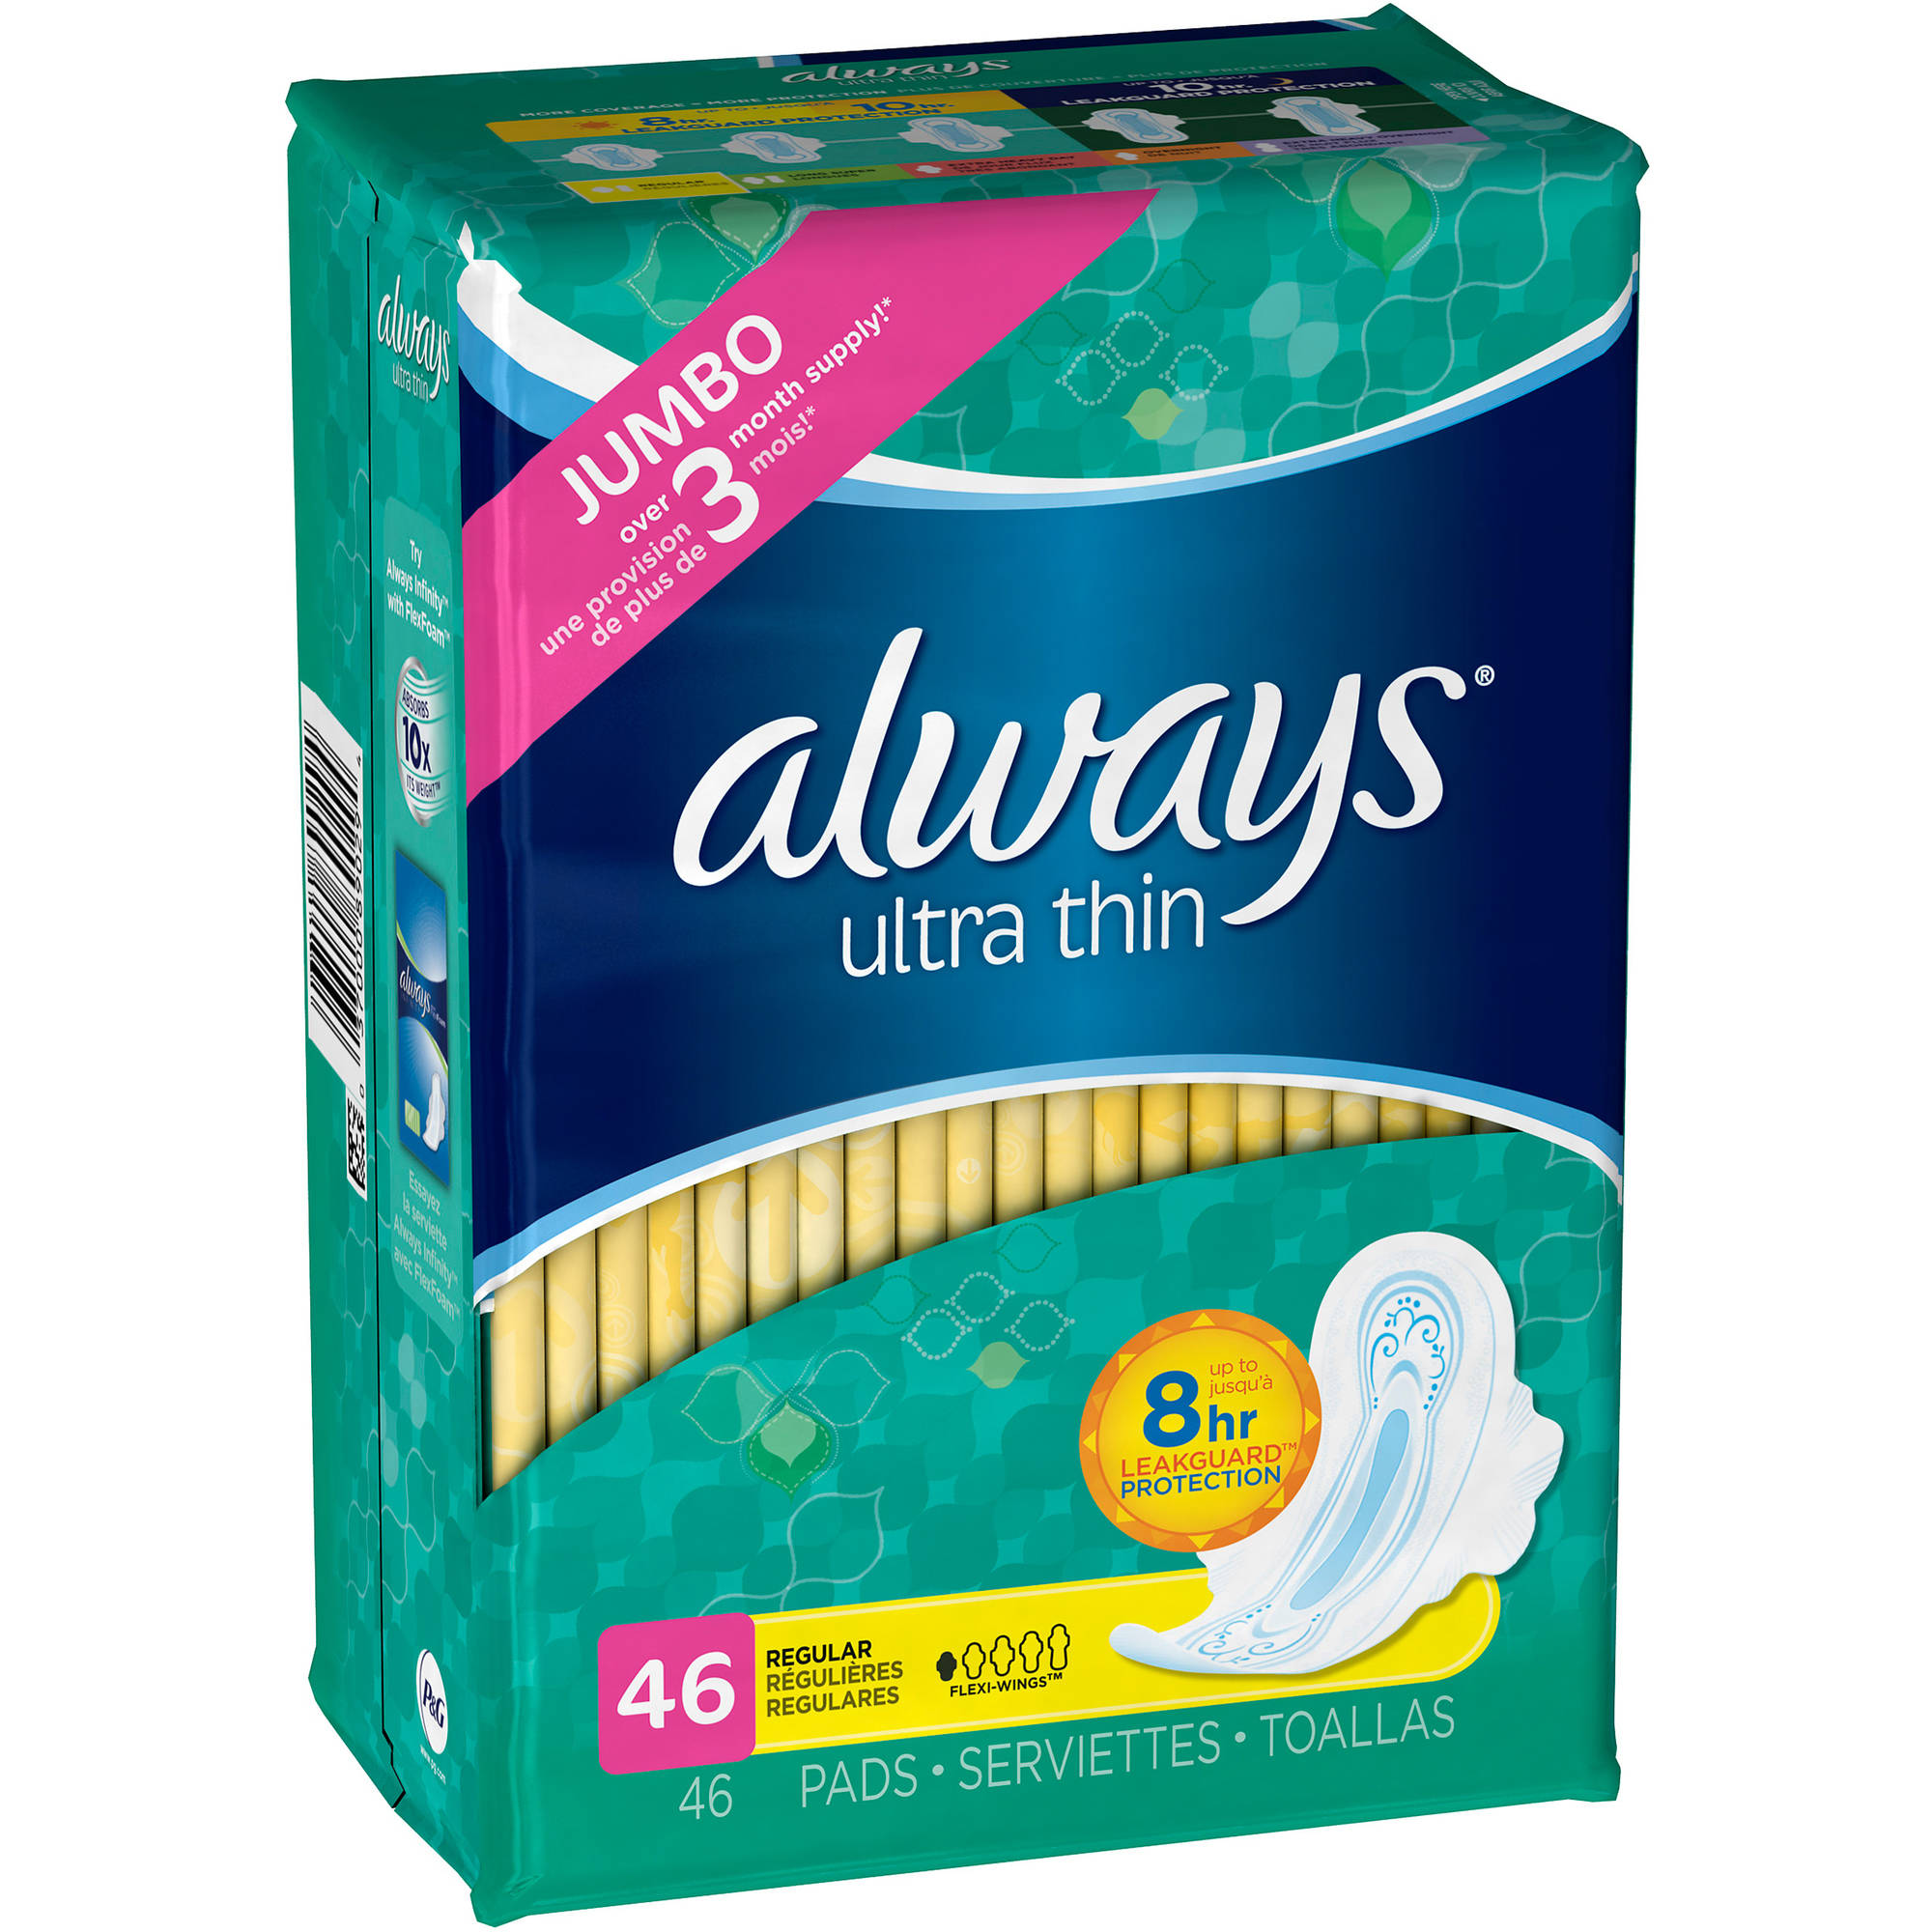 Always Ultra Thin Pads with Wings, 46 count